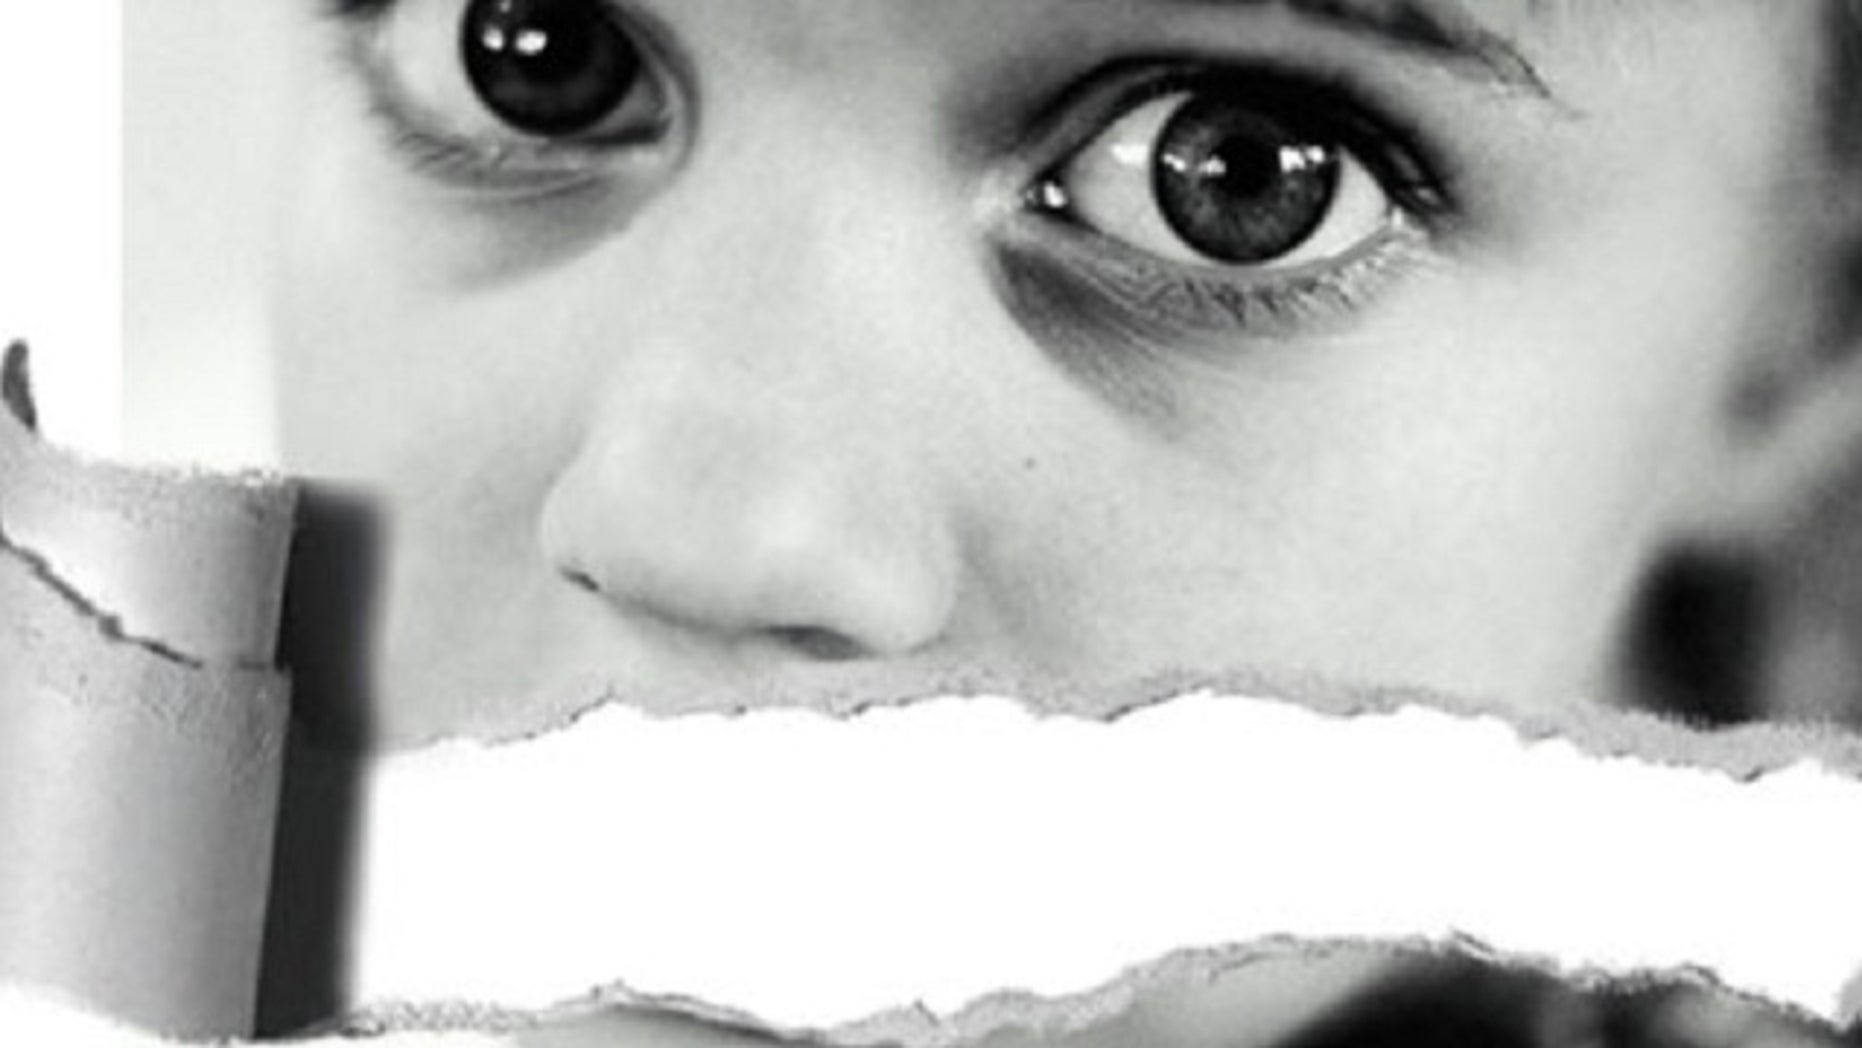 An image on the anti-pornography website SMILE29.eu shows a young girl, her mouth symbolically ripped away.